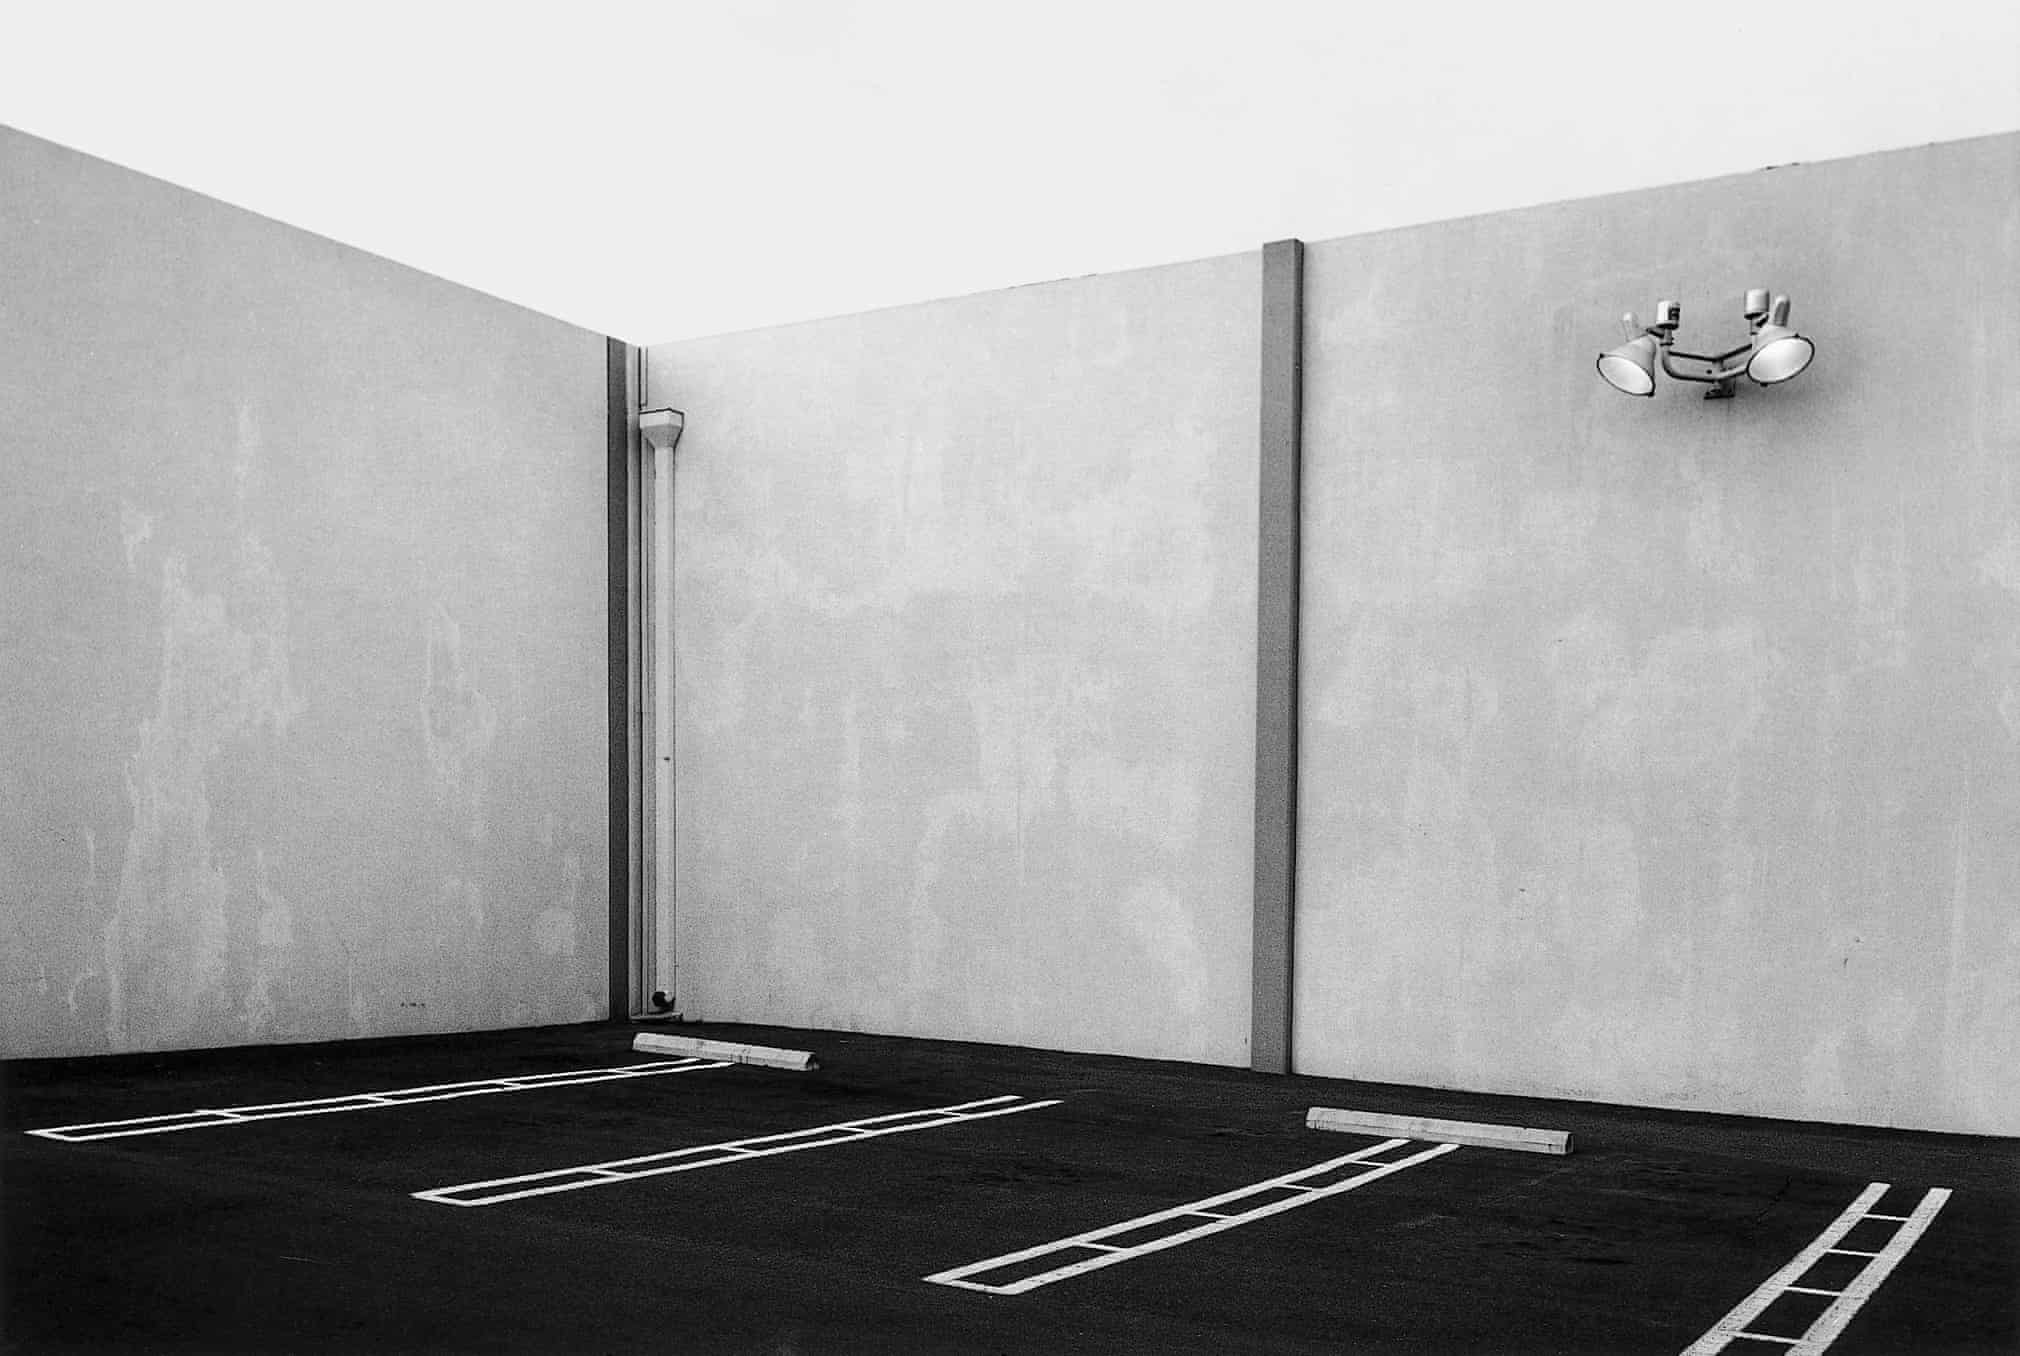 Lewis Baltz,  South Corner, Parking Area, 23831 El Toro Road, El Toro  (1973)